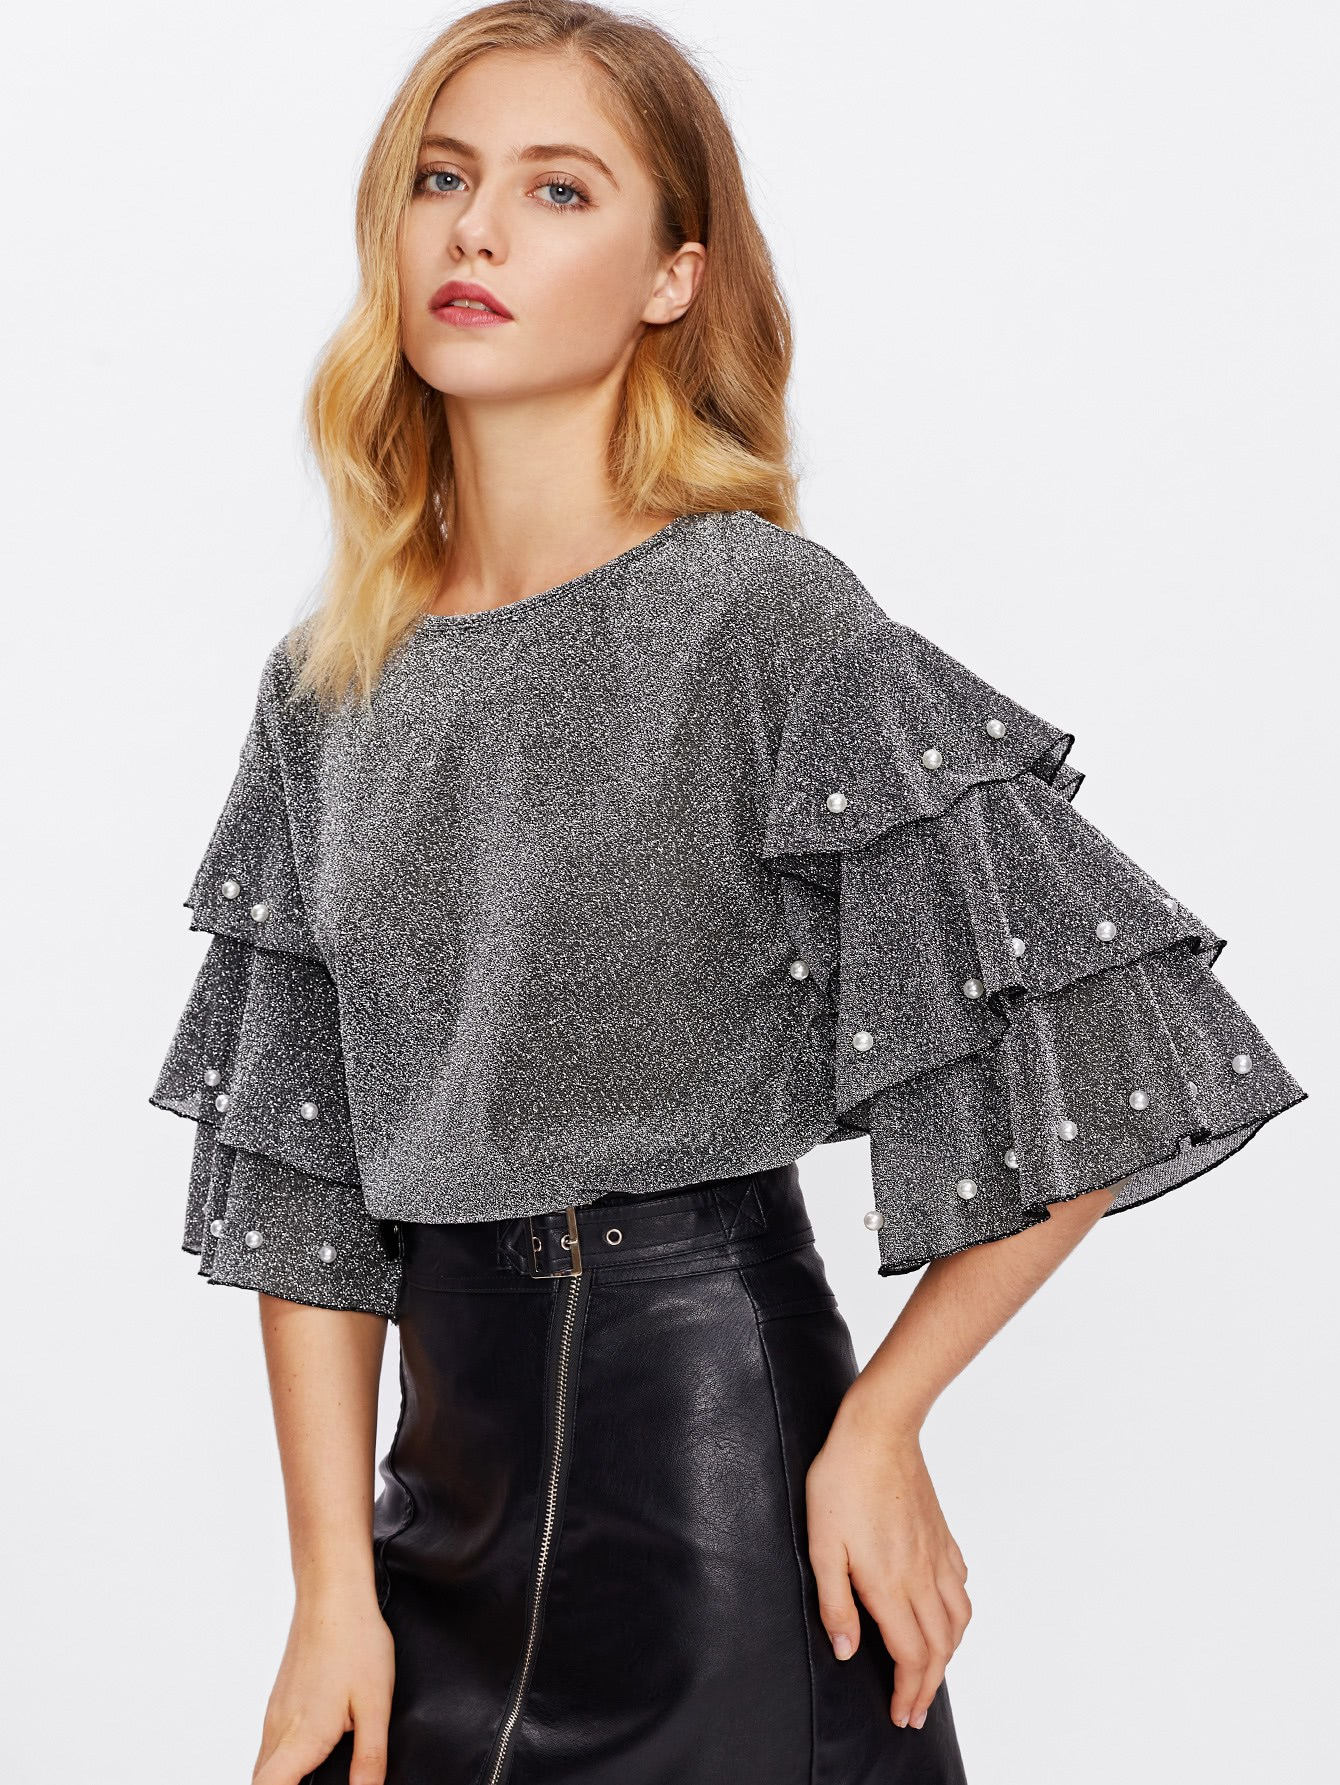 Pearl Beading Tiered Sleeve Glitter Top pearl beading layered sleeve top